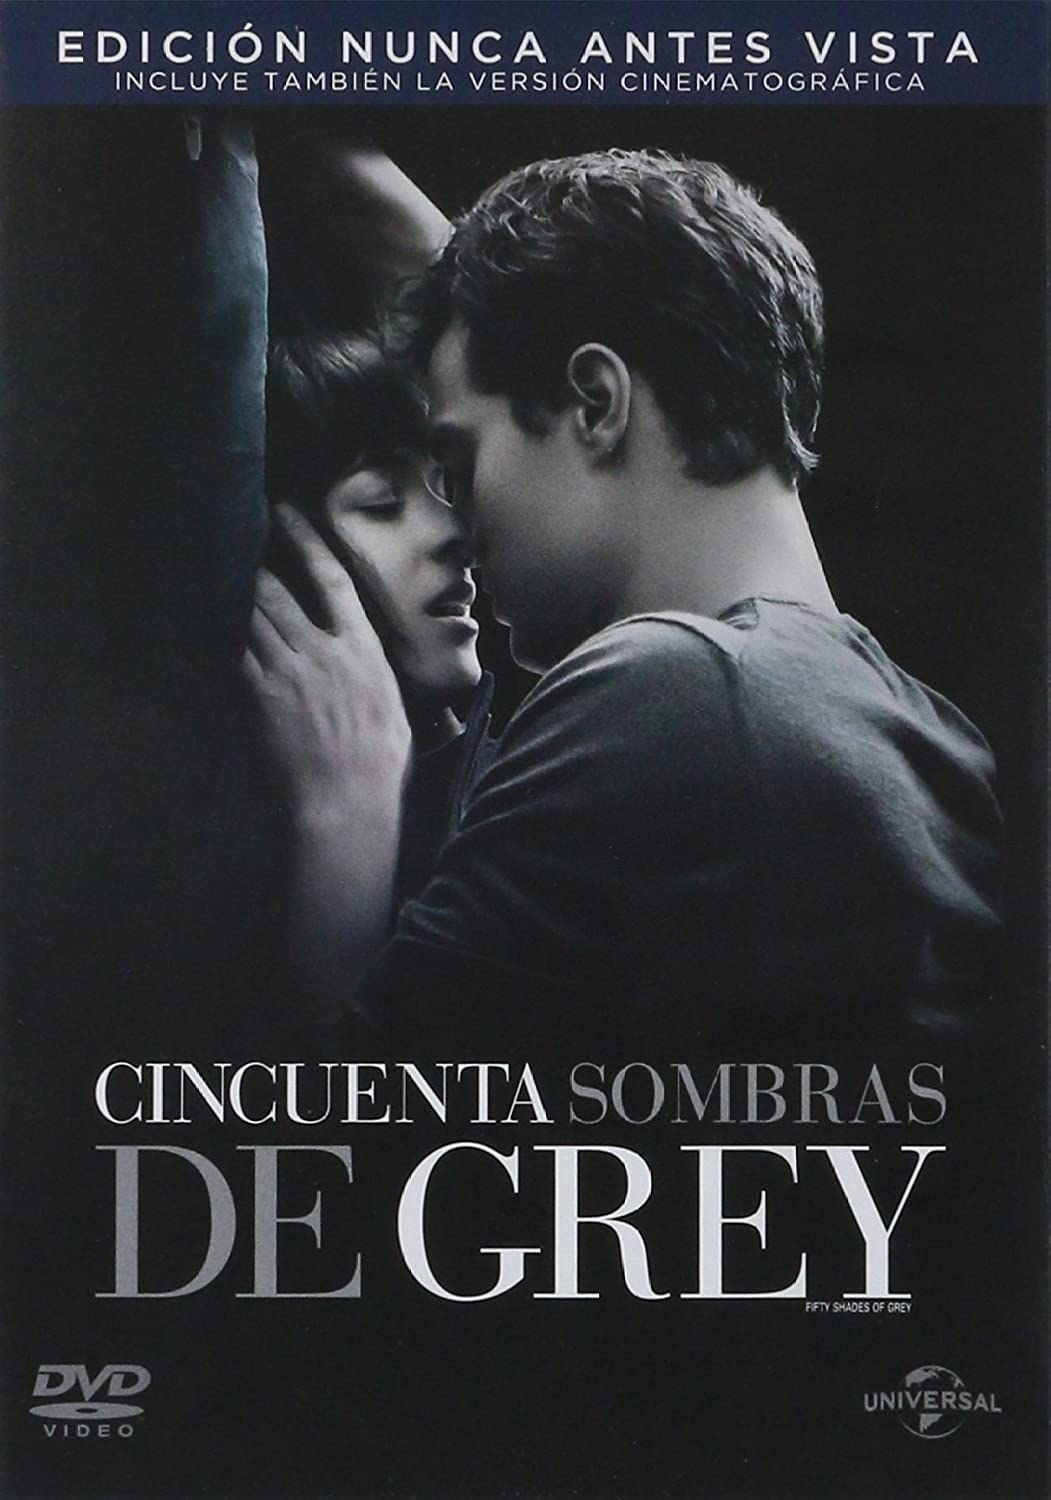 Cincuenta Sombras De Grey Dvd Region 1 Y 4 Version Extendida Sam Taylor Johnson Movies Tv